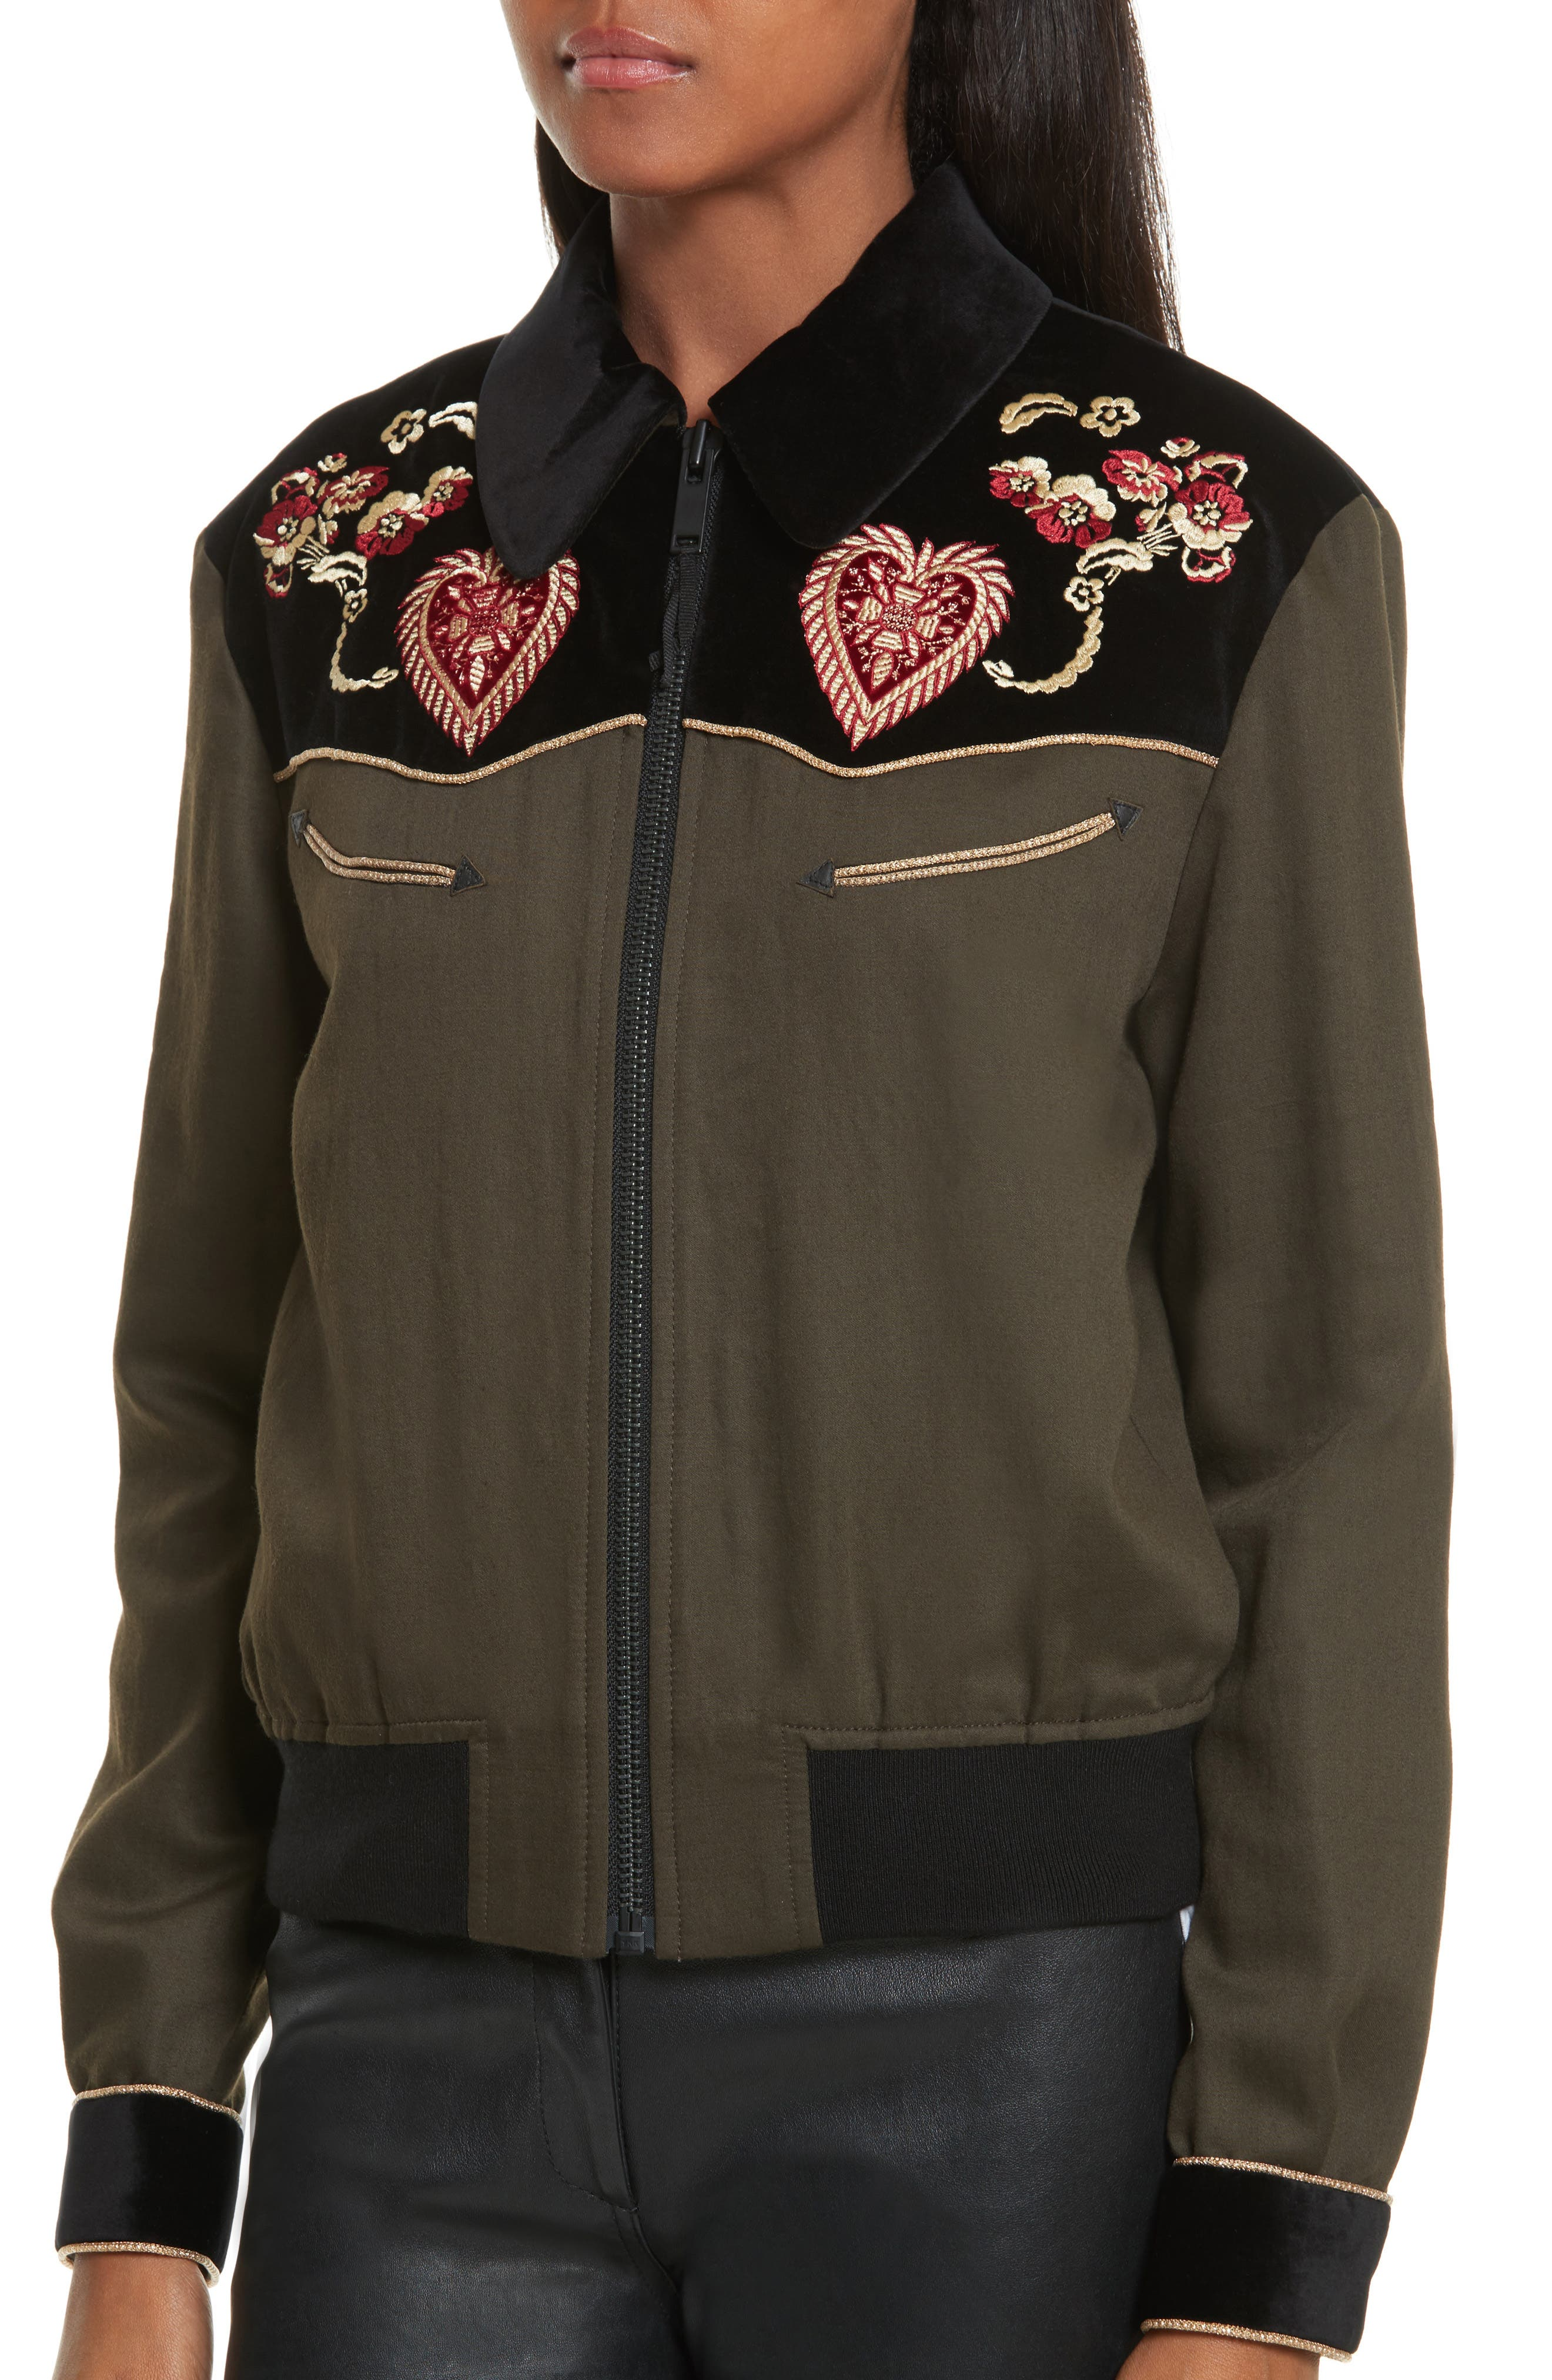 Contrast Embroidery Bomber Jacket,                             Alternate thumbnail 4, color,                             Taupe